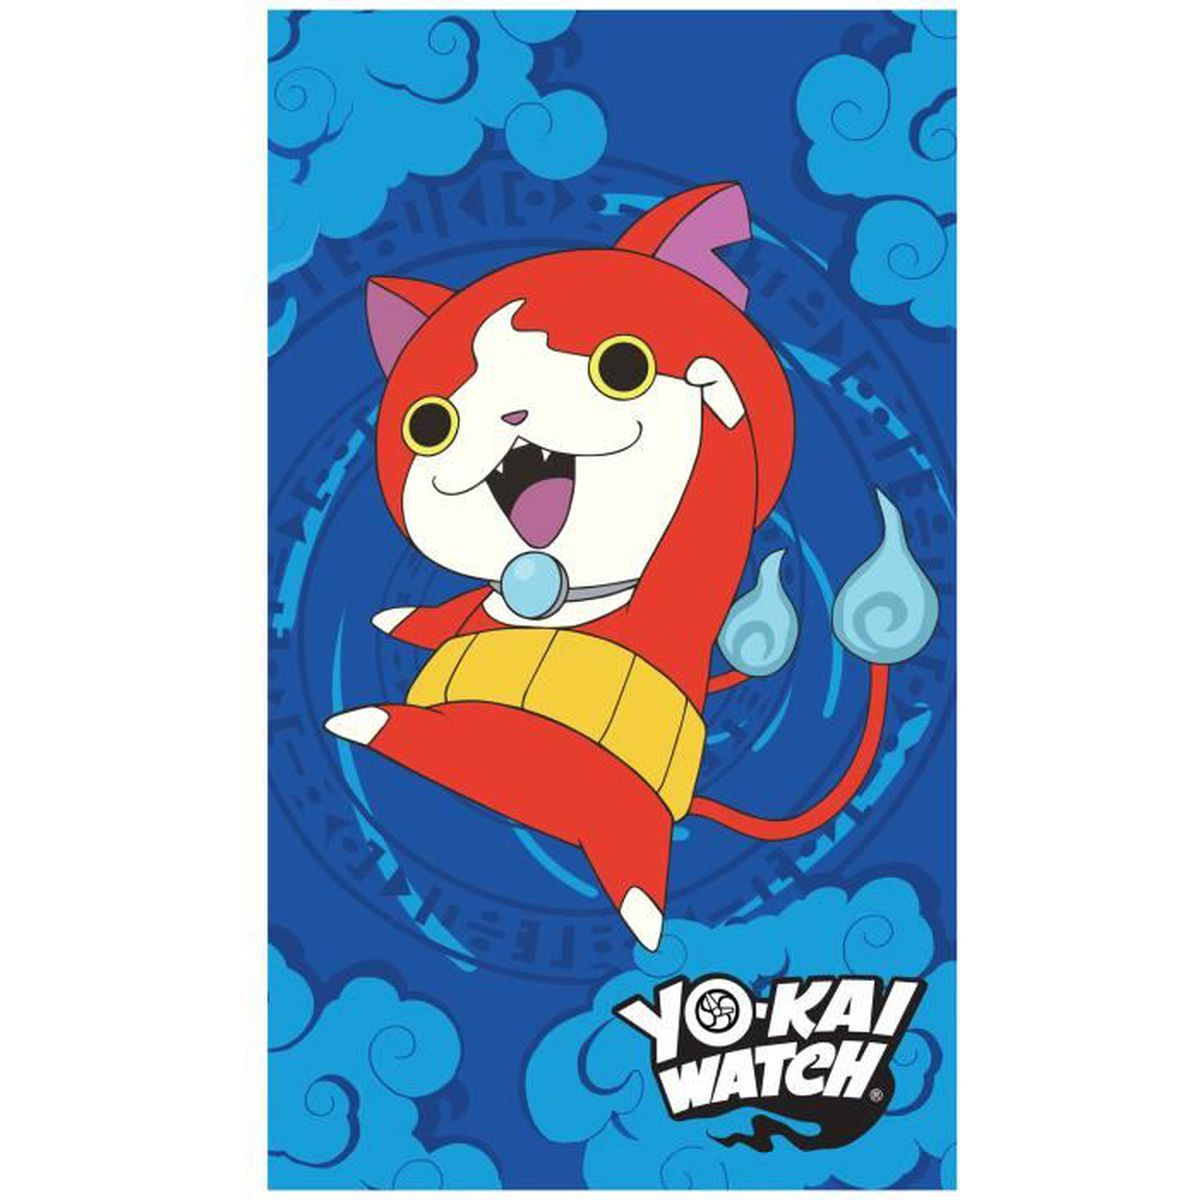 Drap de plage yo kai watch gang 100 coton 320 g m for Salle de bain yo kai watch 2